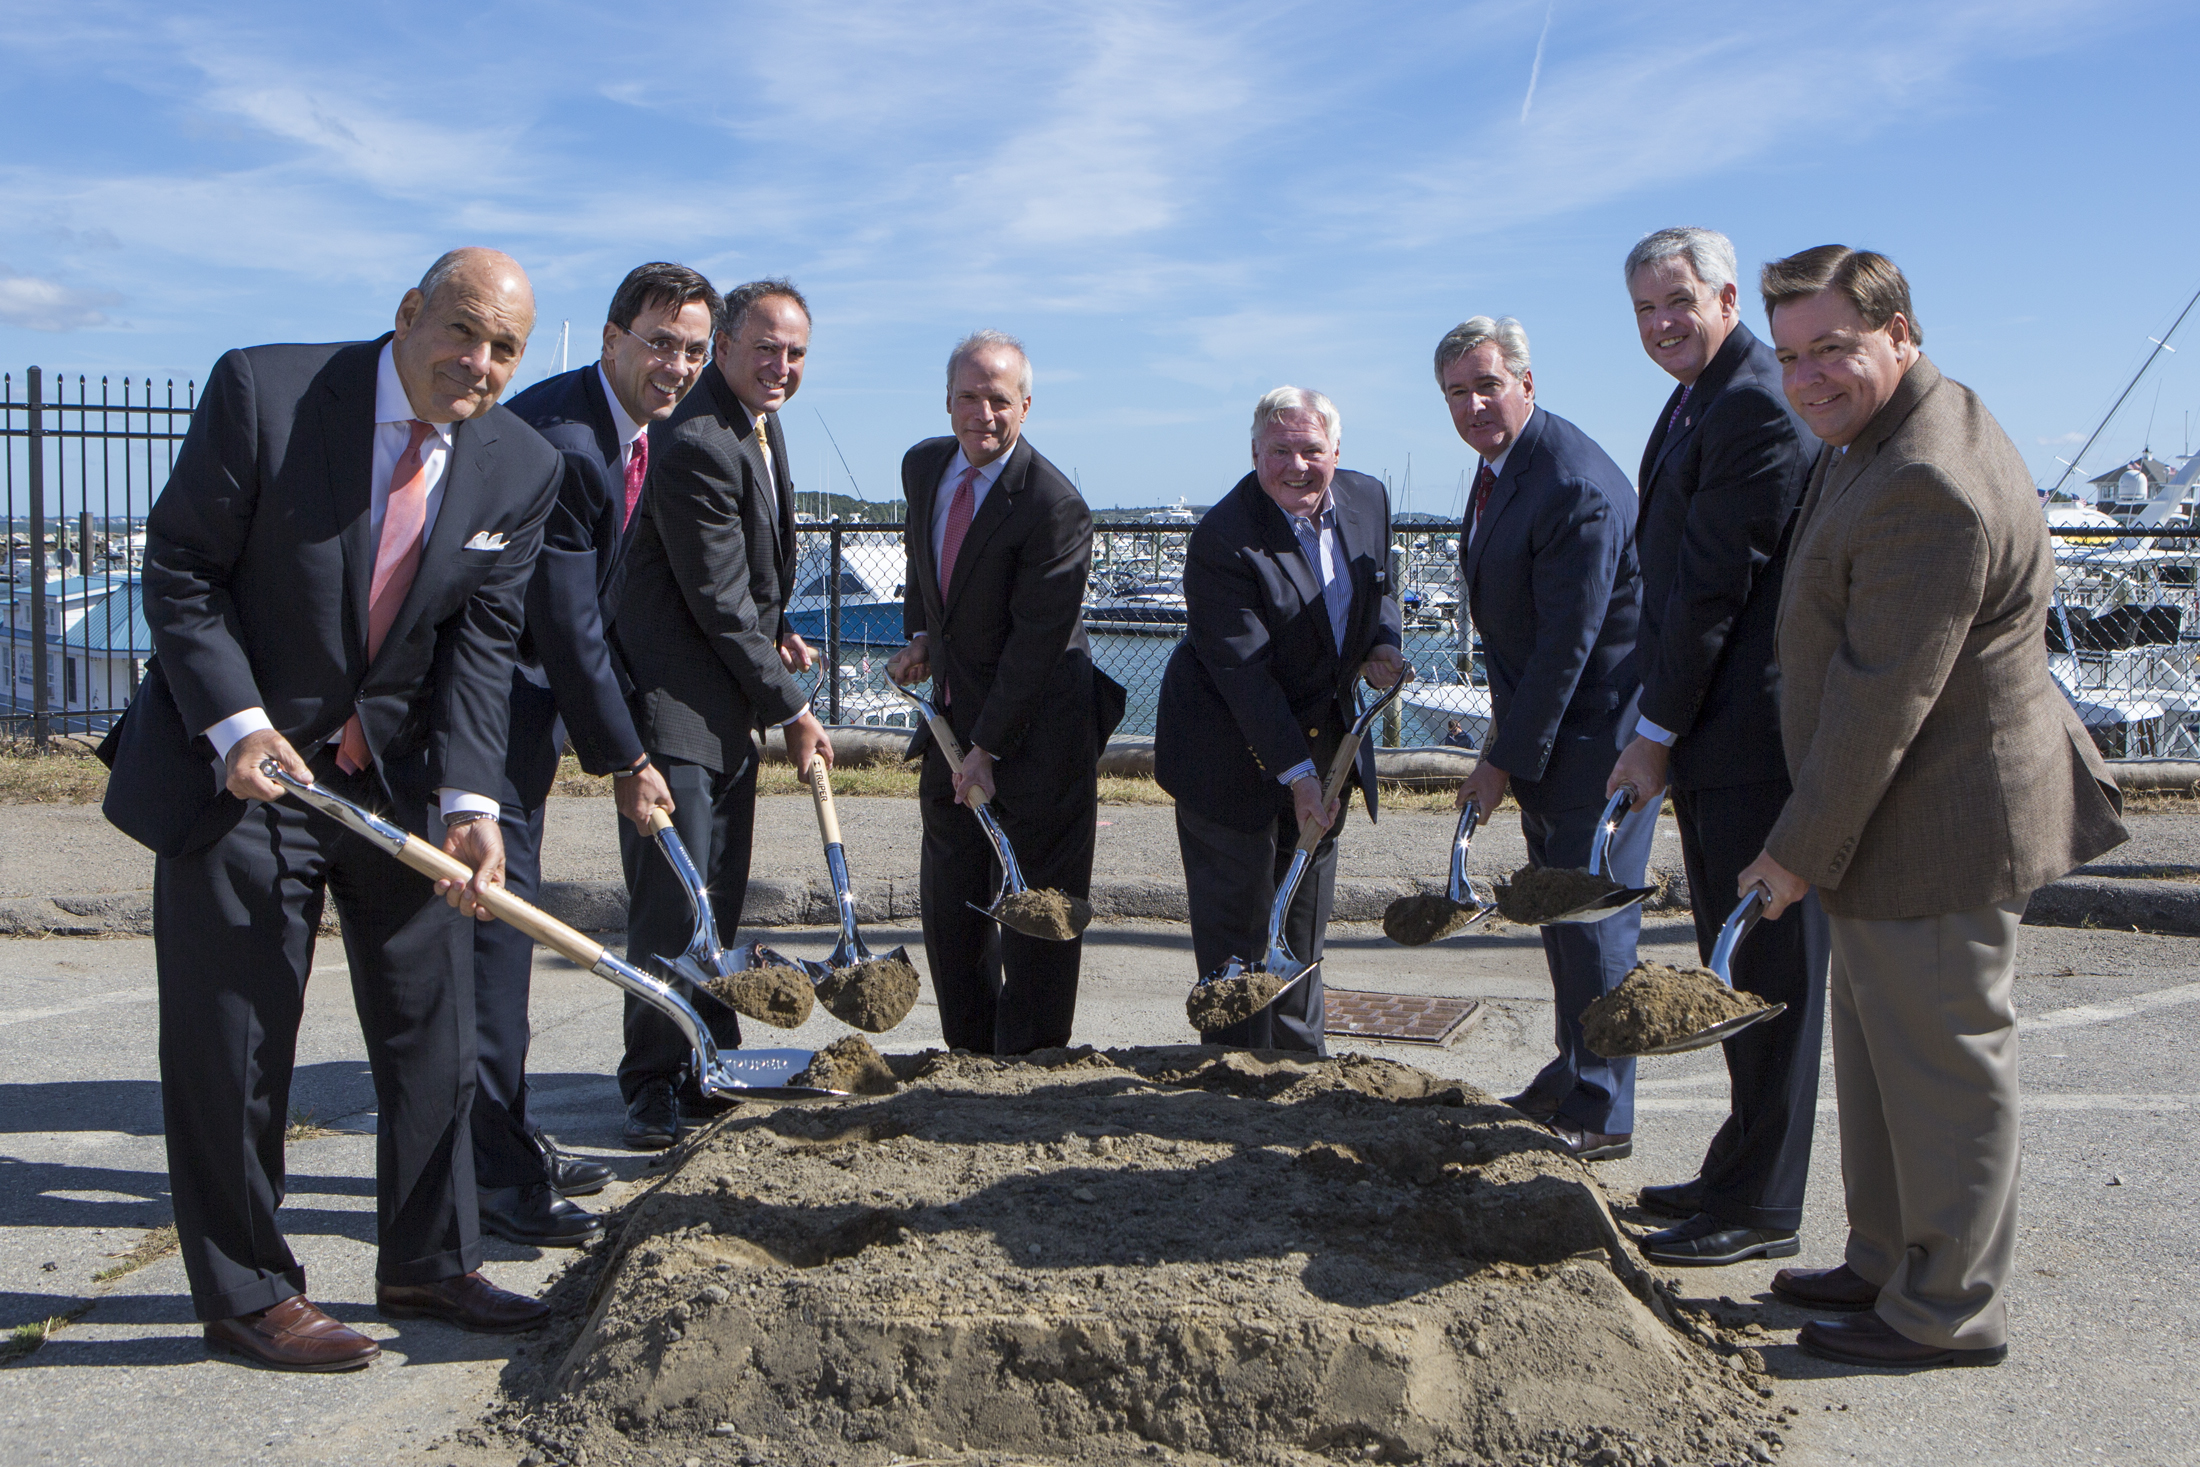 From left to right:  Howard Elkus, Elkus Manfredi; Hines Managing Director Jim Dunlop; MetLife Director Don Svoboda; Hines Senior Managing Director David Perry; Chairman of the Quincy Planning Board William Geary; Massachusetts State Representative Bruce J. Ayers; Massachusetts State Senator John F. Keenan; Quincy Mayor Tom Koch